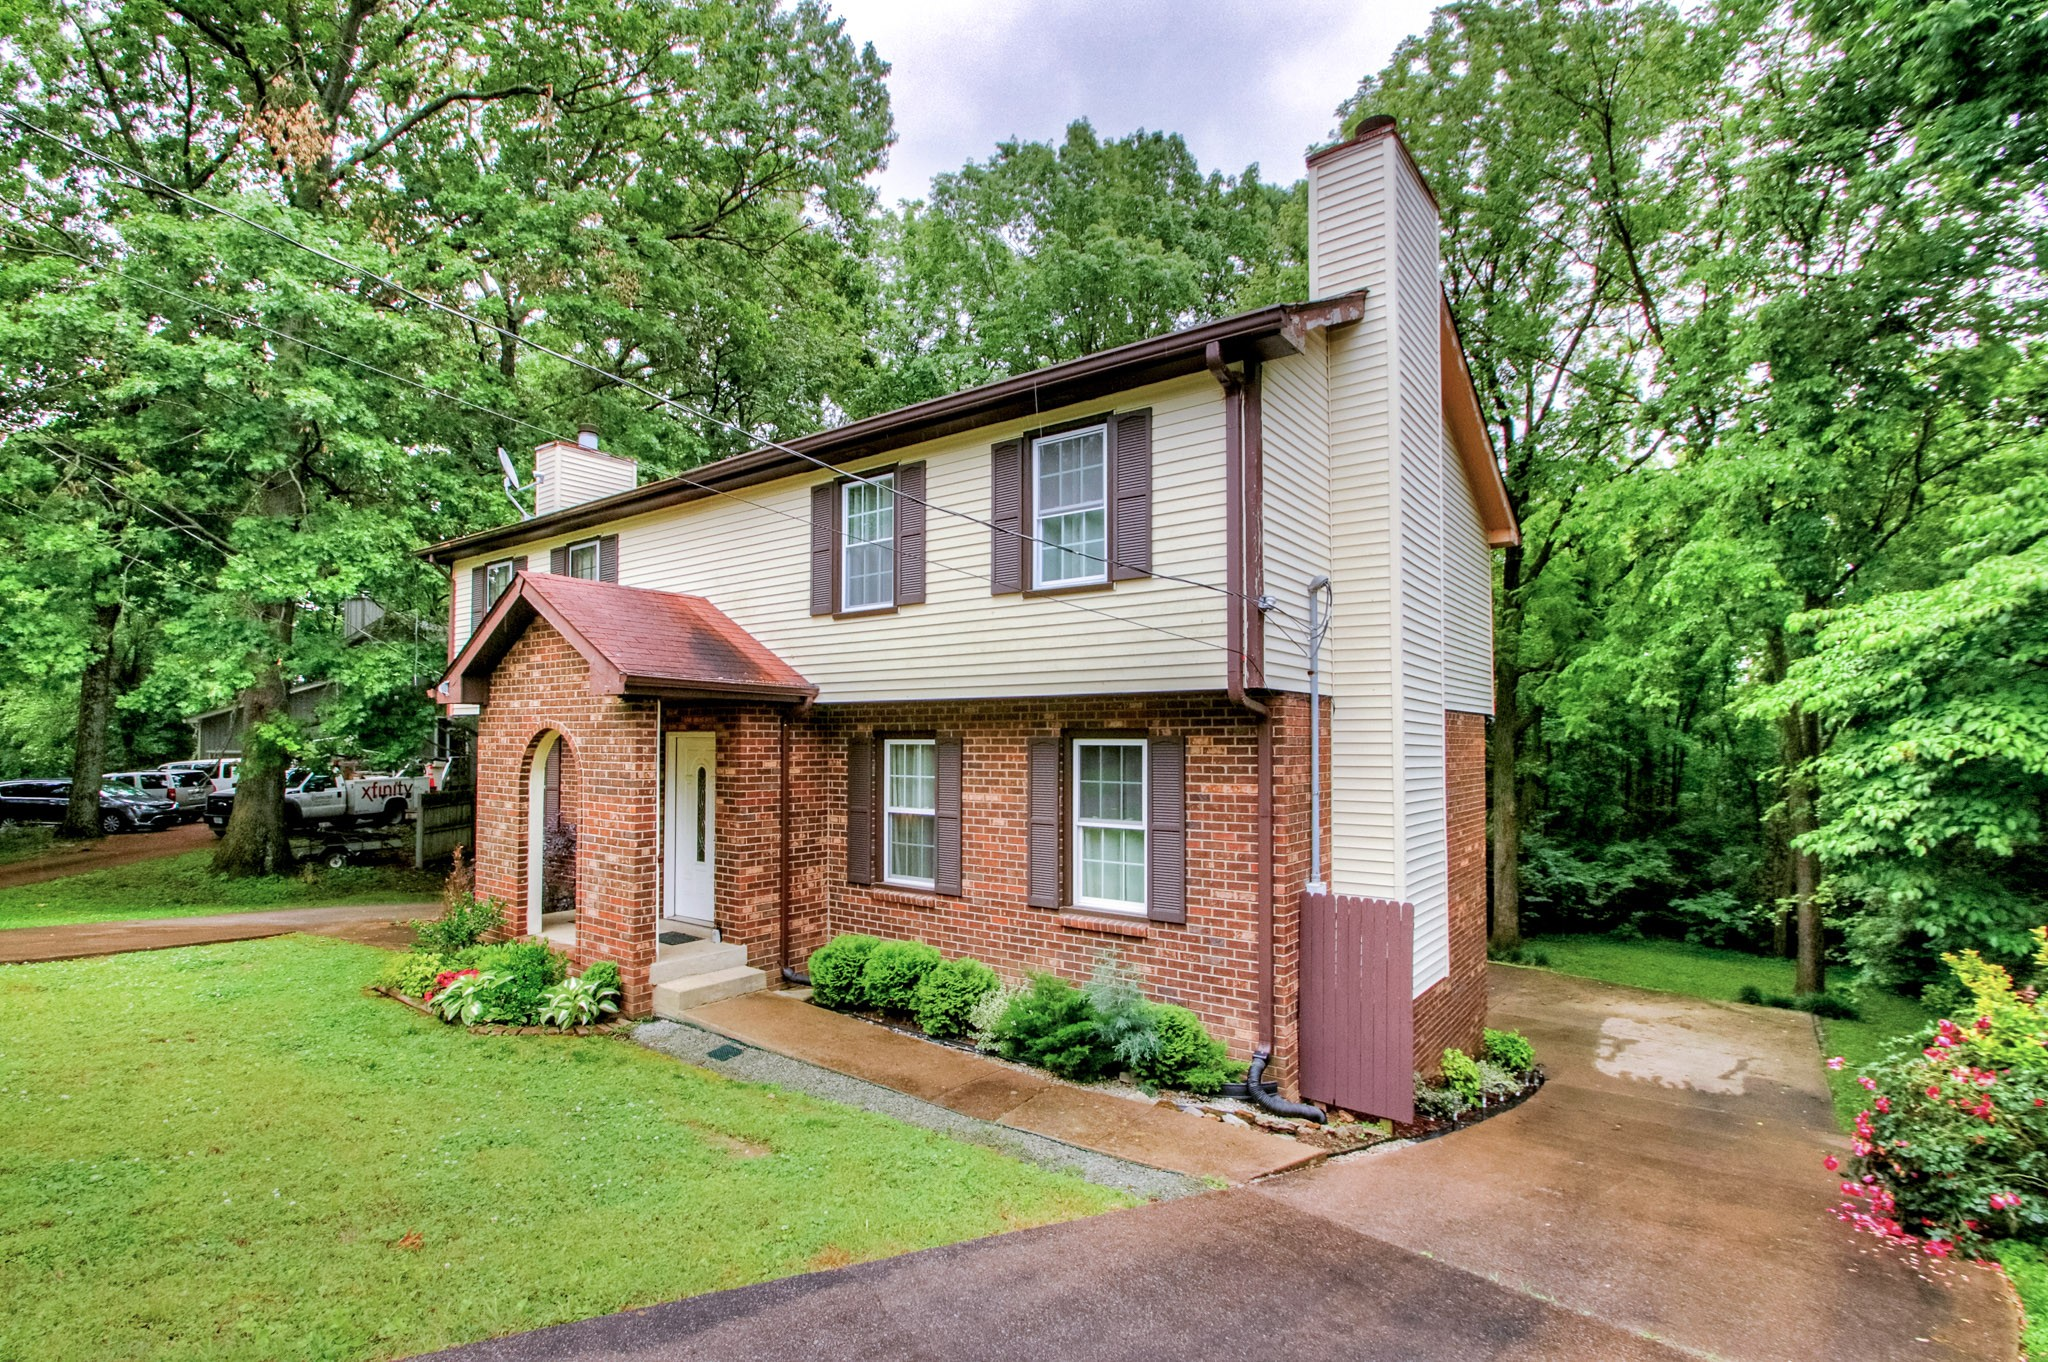 3213 Lumberjack Rd, Nashville, TN 37214 - Nashville, TN real estate listing